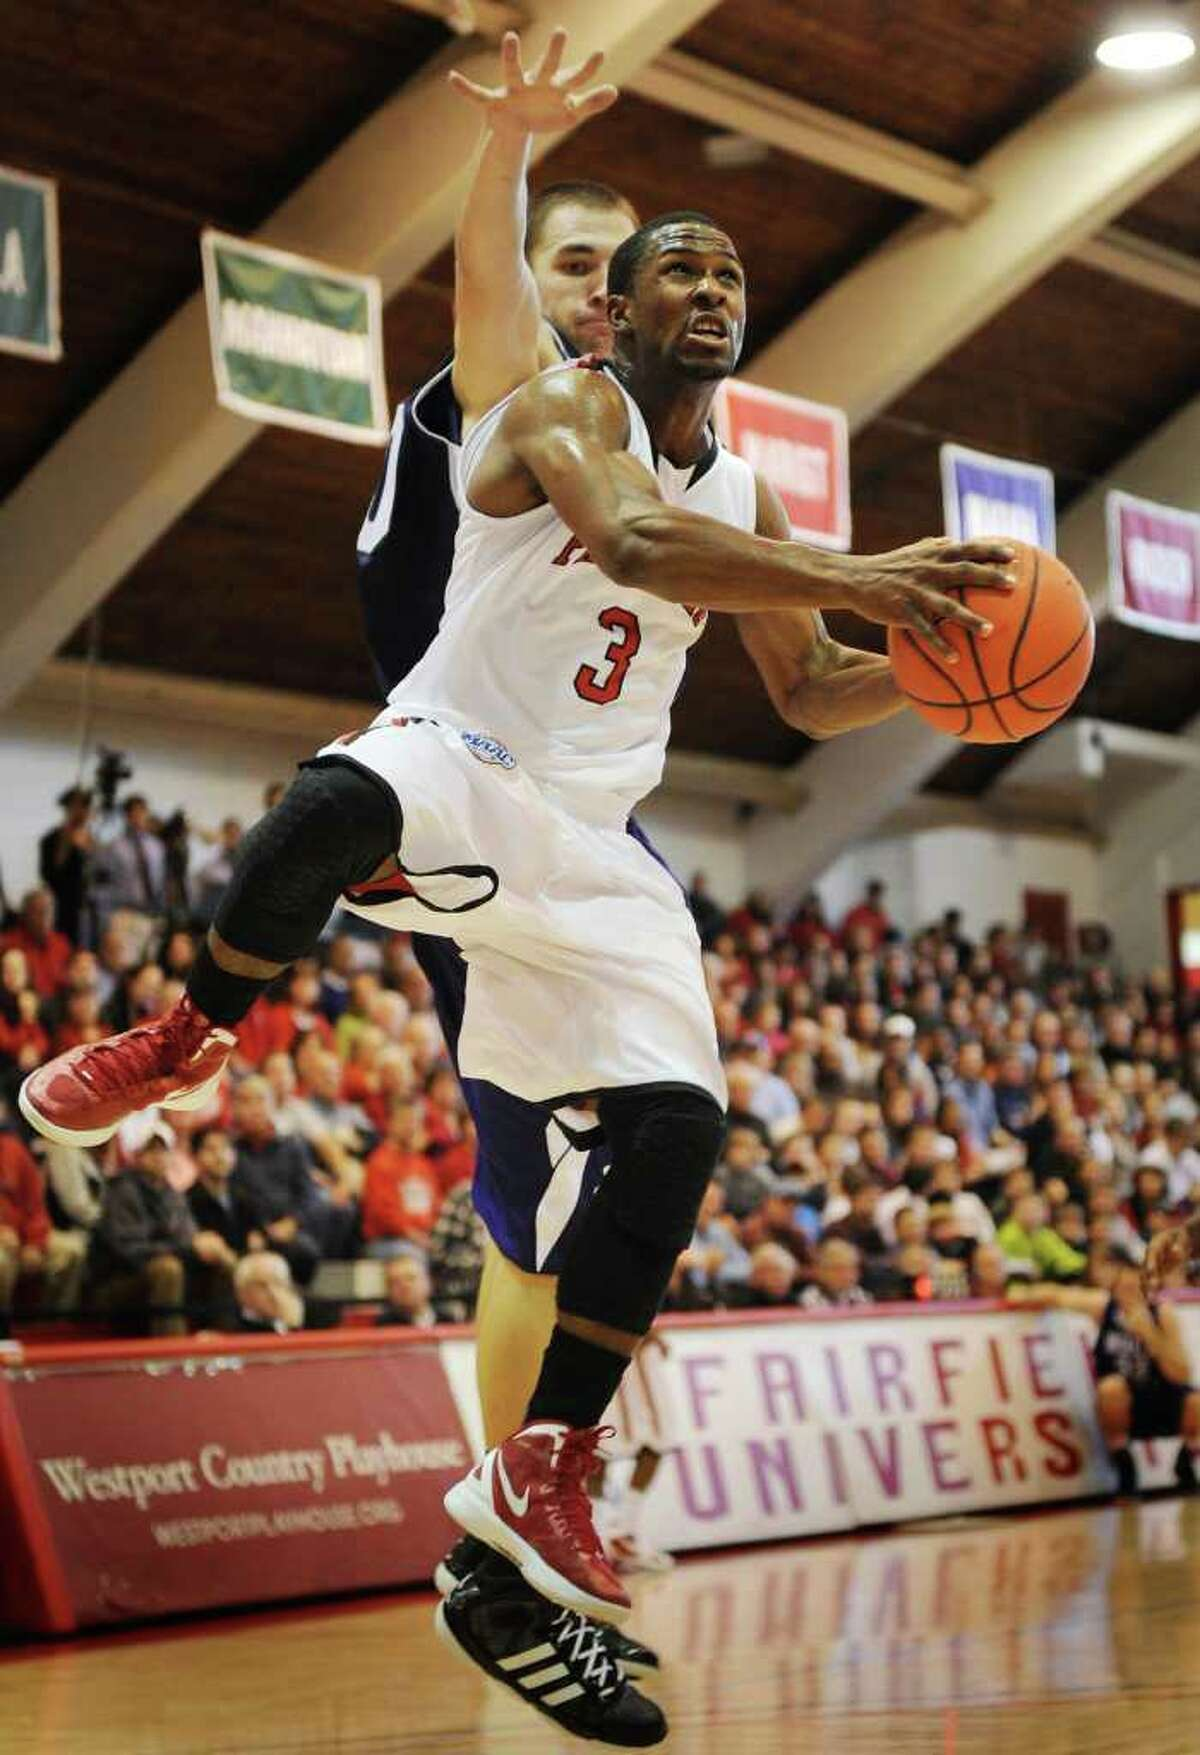 Fairfield's Derek Needham drives to the basket during the Stags' victory over Holy Cross at Alumni Hall in Fairfield on Sunday, November 20, 2011.